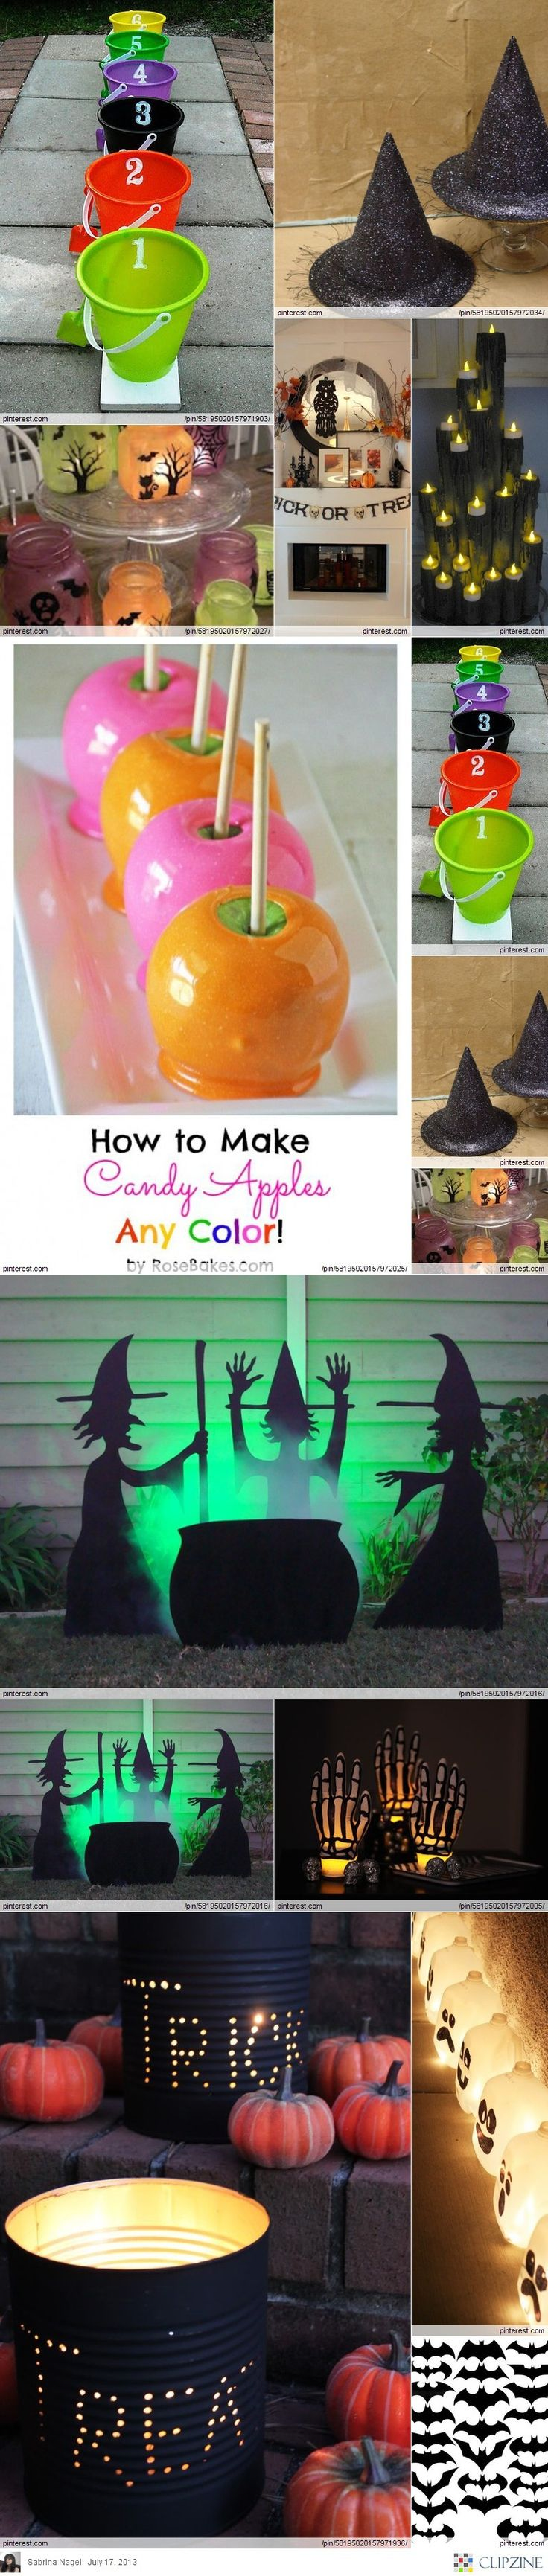 Fall / Halloween Ideas & food..like the black tin trick or treat cans